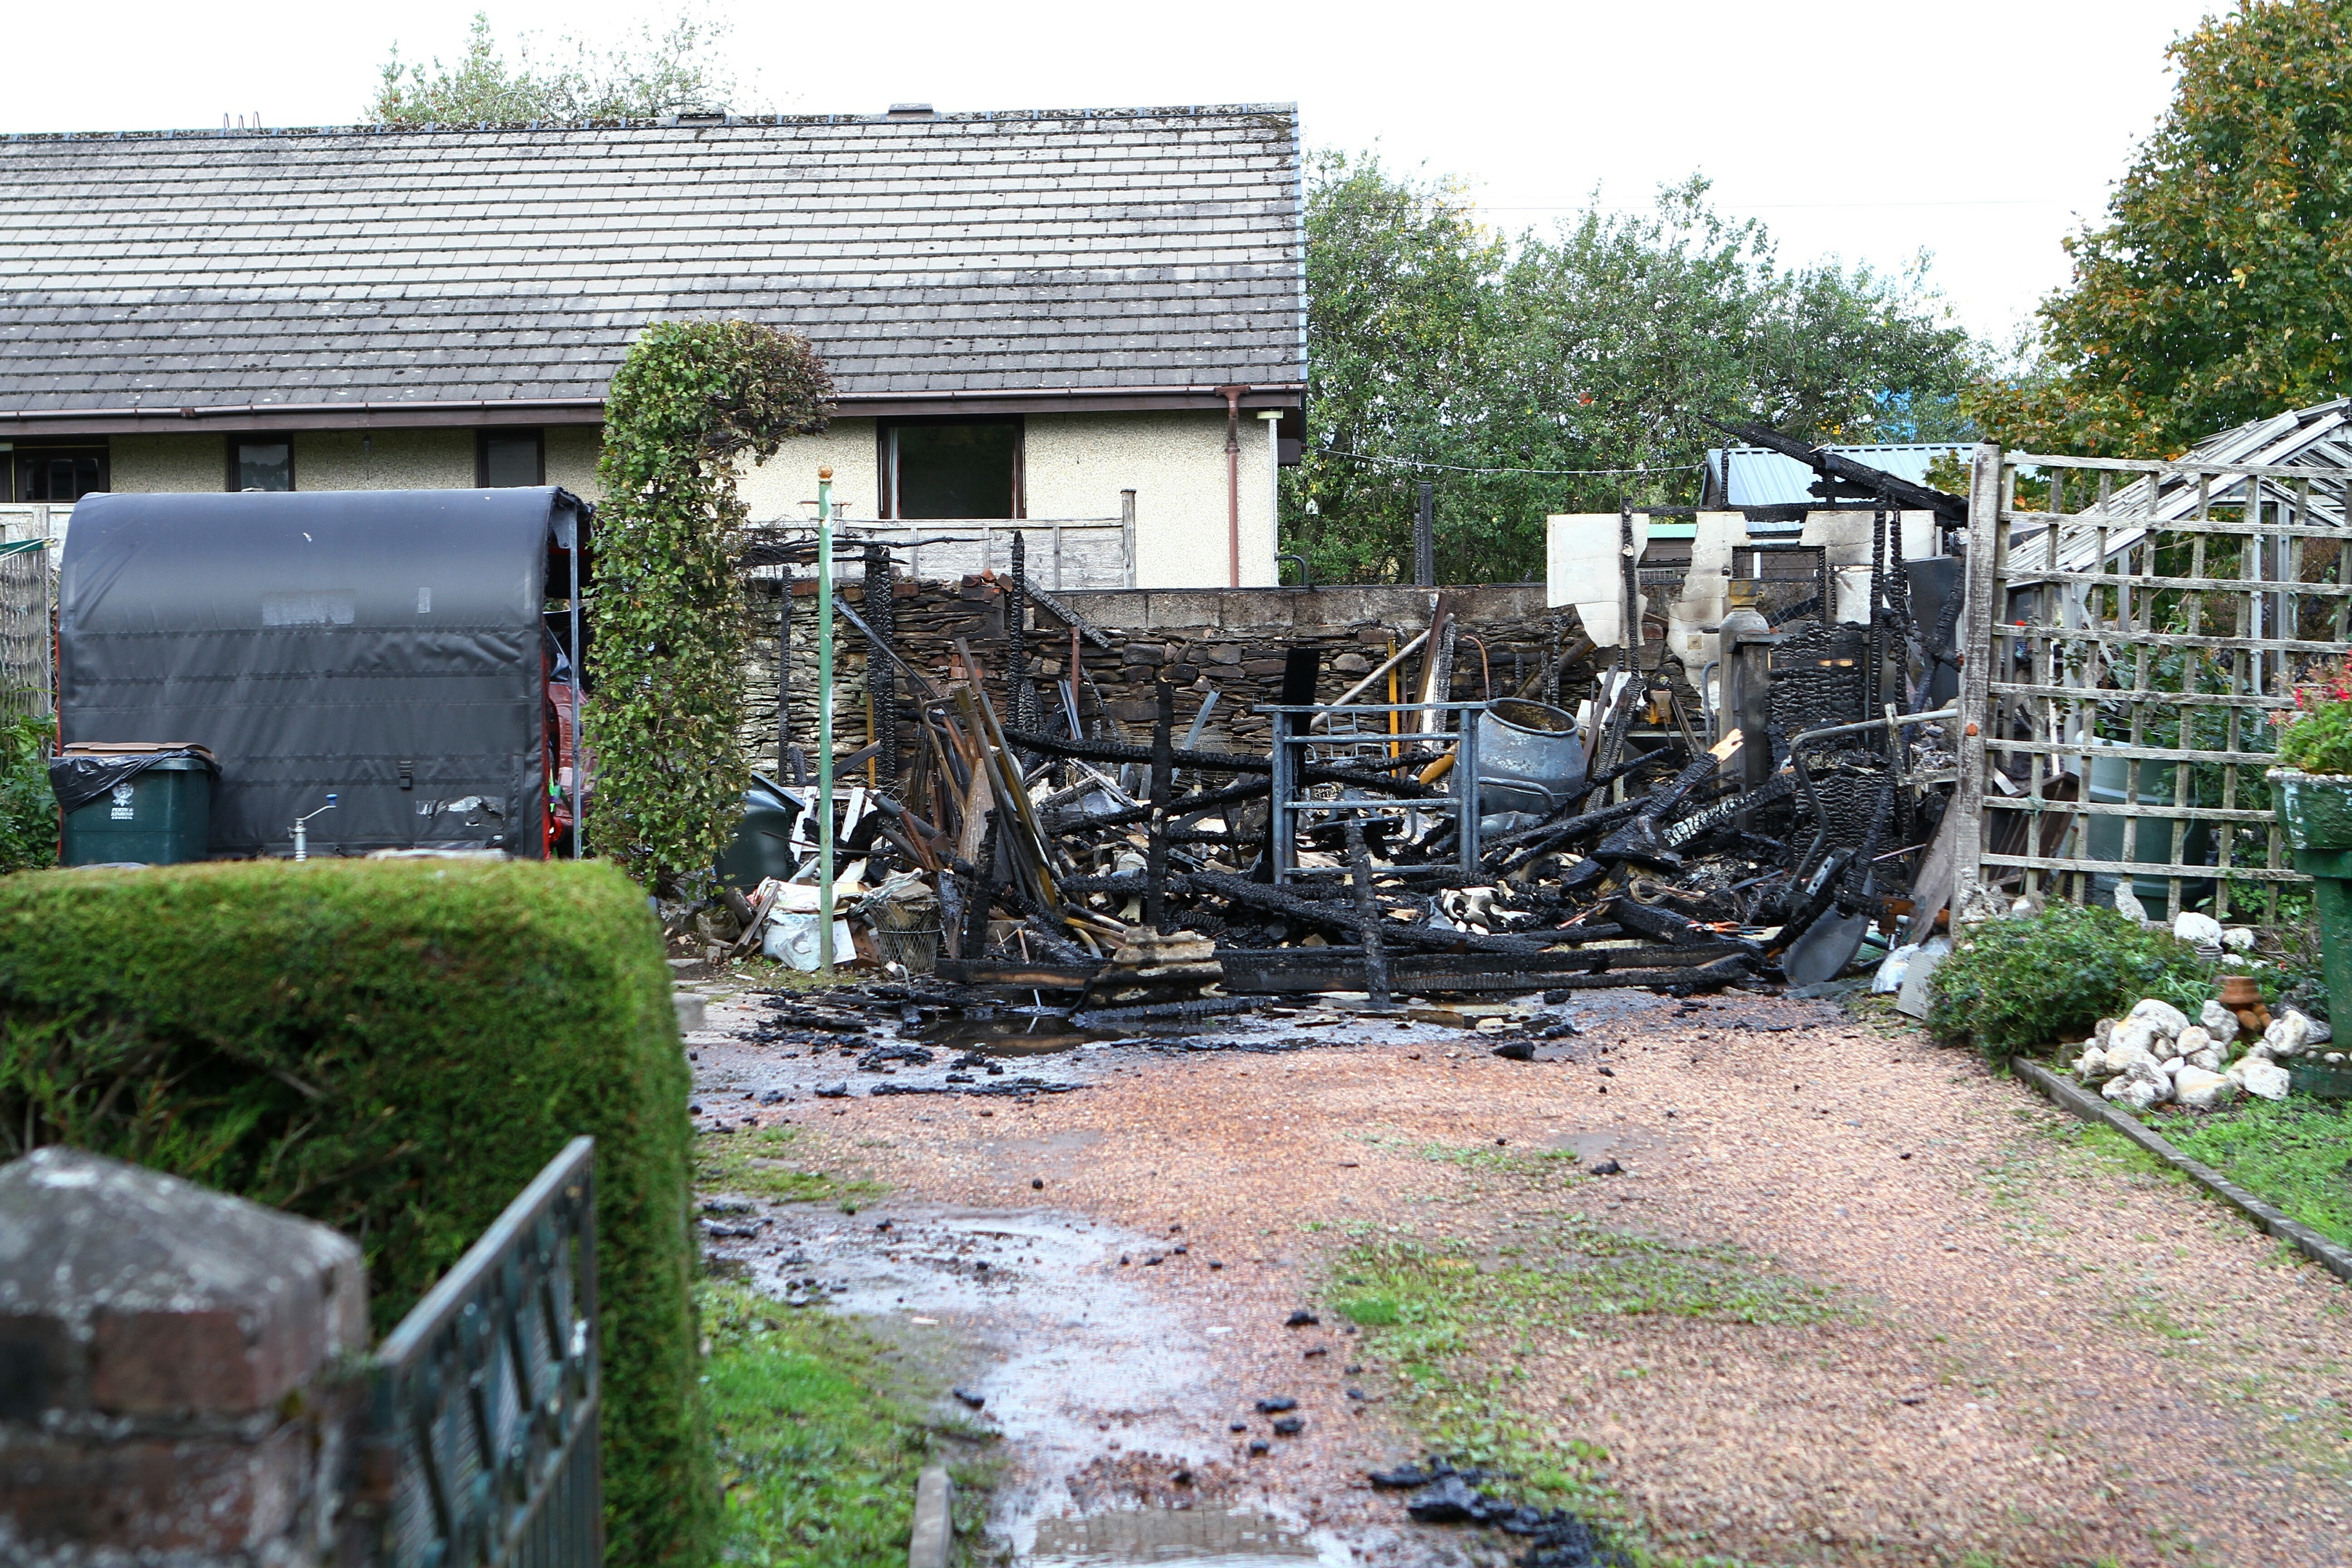 The remains of the garage, containing gas canisters.